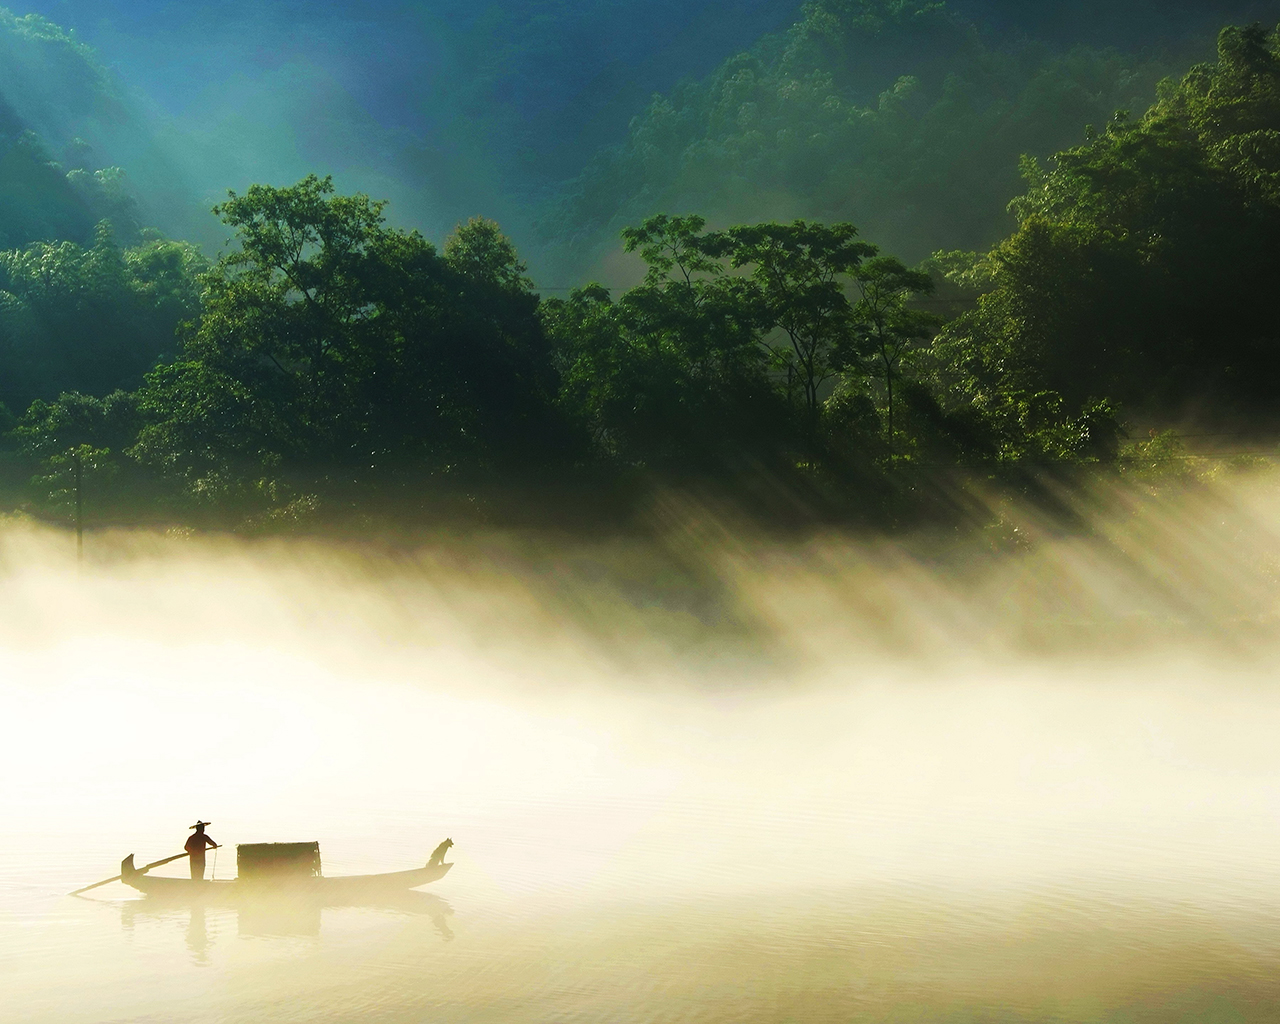 A man and his dog with boat on the river in the sunlight